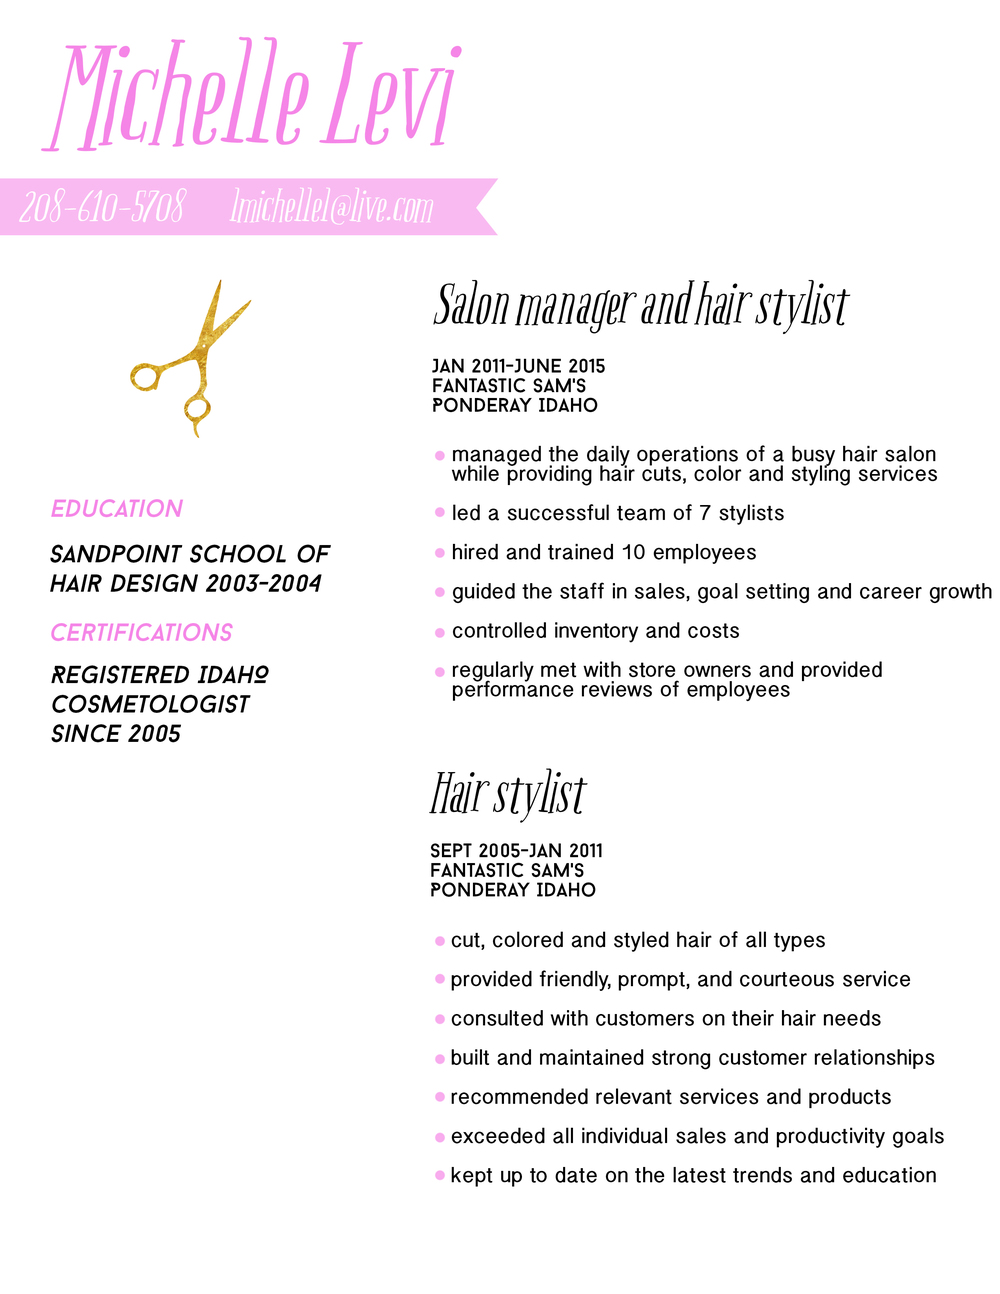 Fun resume design for a hairstylist